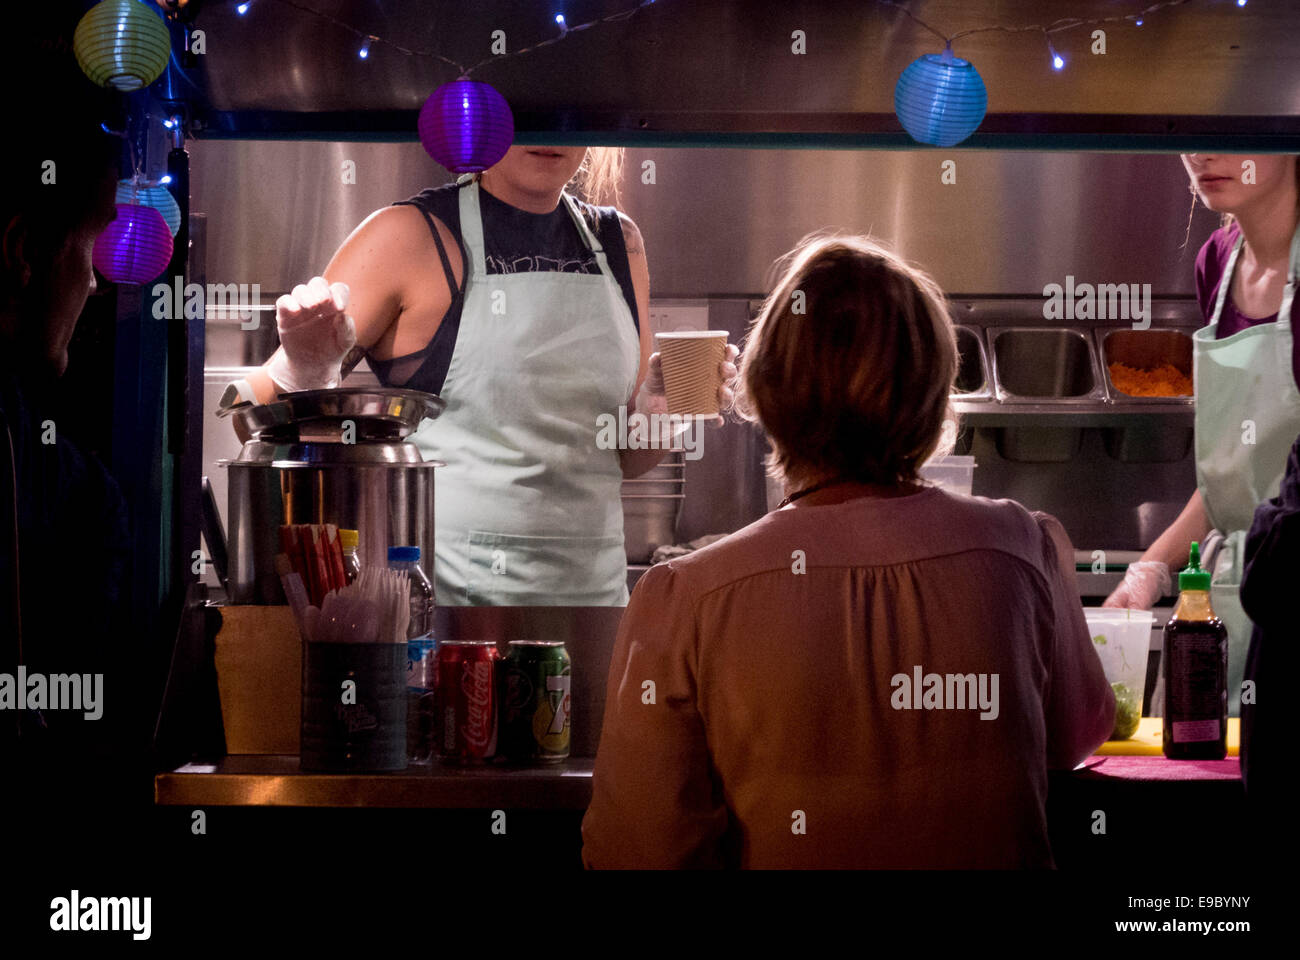 Outdoor catering stall serving hot drinks at night. - Stock Image